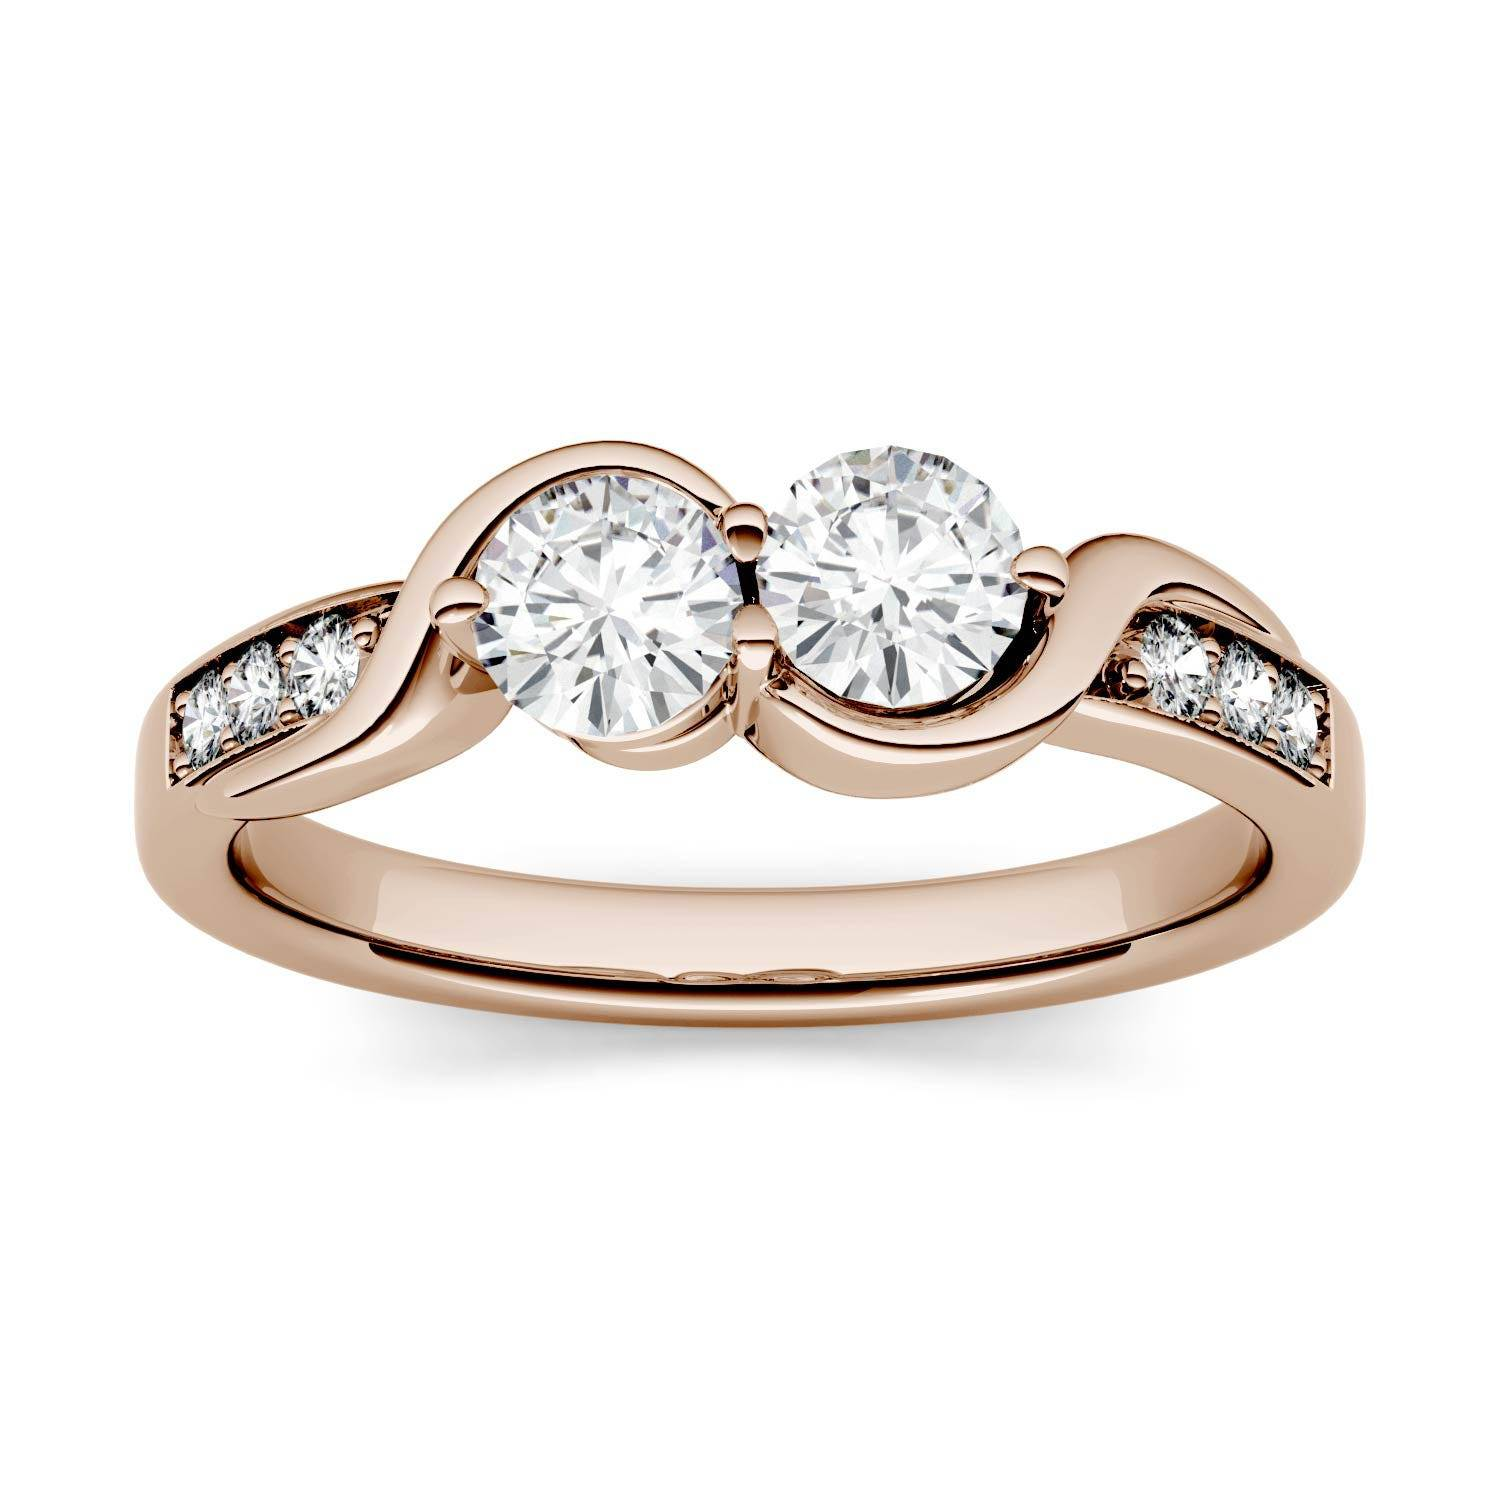 Charles & Colvard Two Stone Swirl with Side Accents Wedding Ring in 14K Rose Gold, Size: 8, 1.12CTW Round Forever One - Colorless Moissanite Charles & Colvard  - Rose Gold - Size: 8